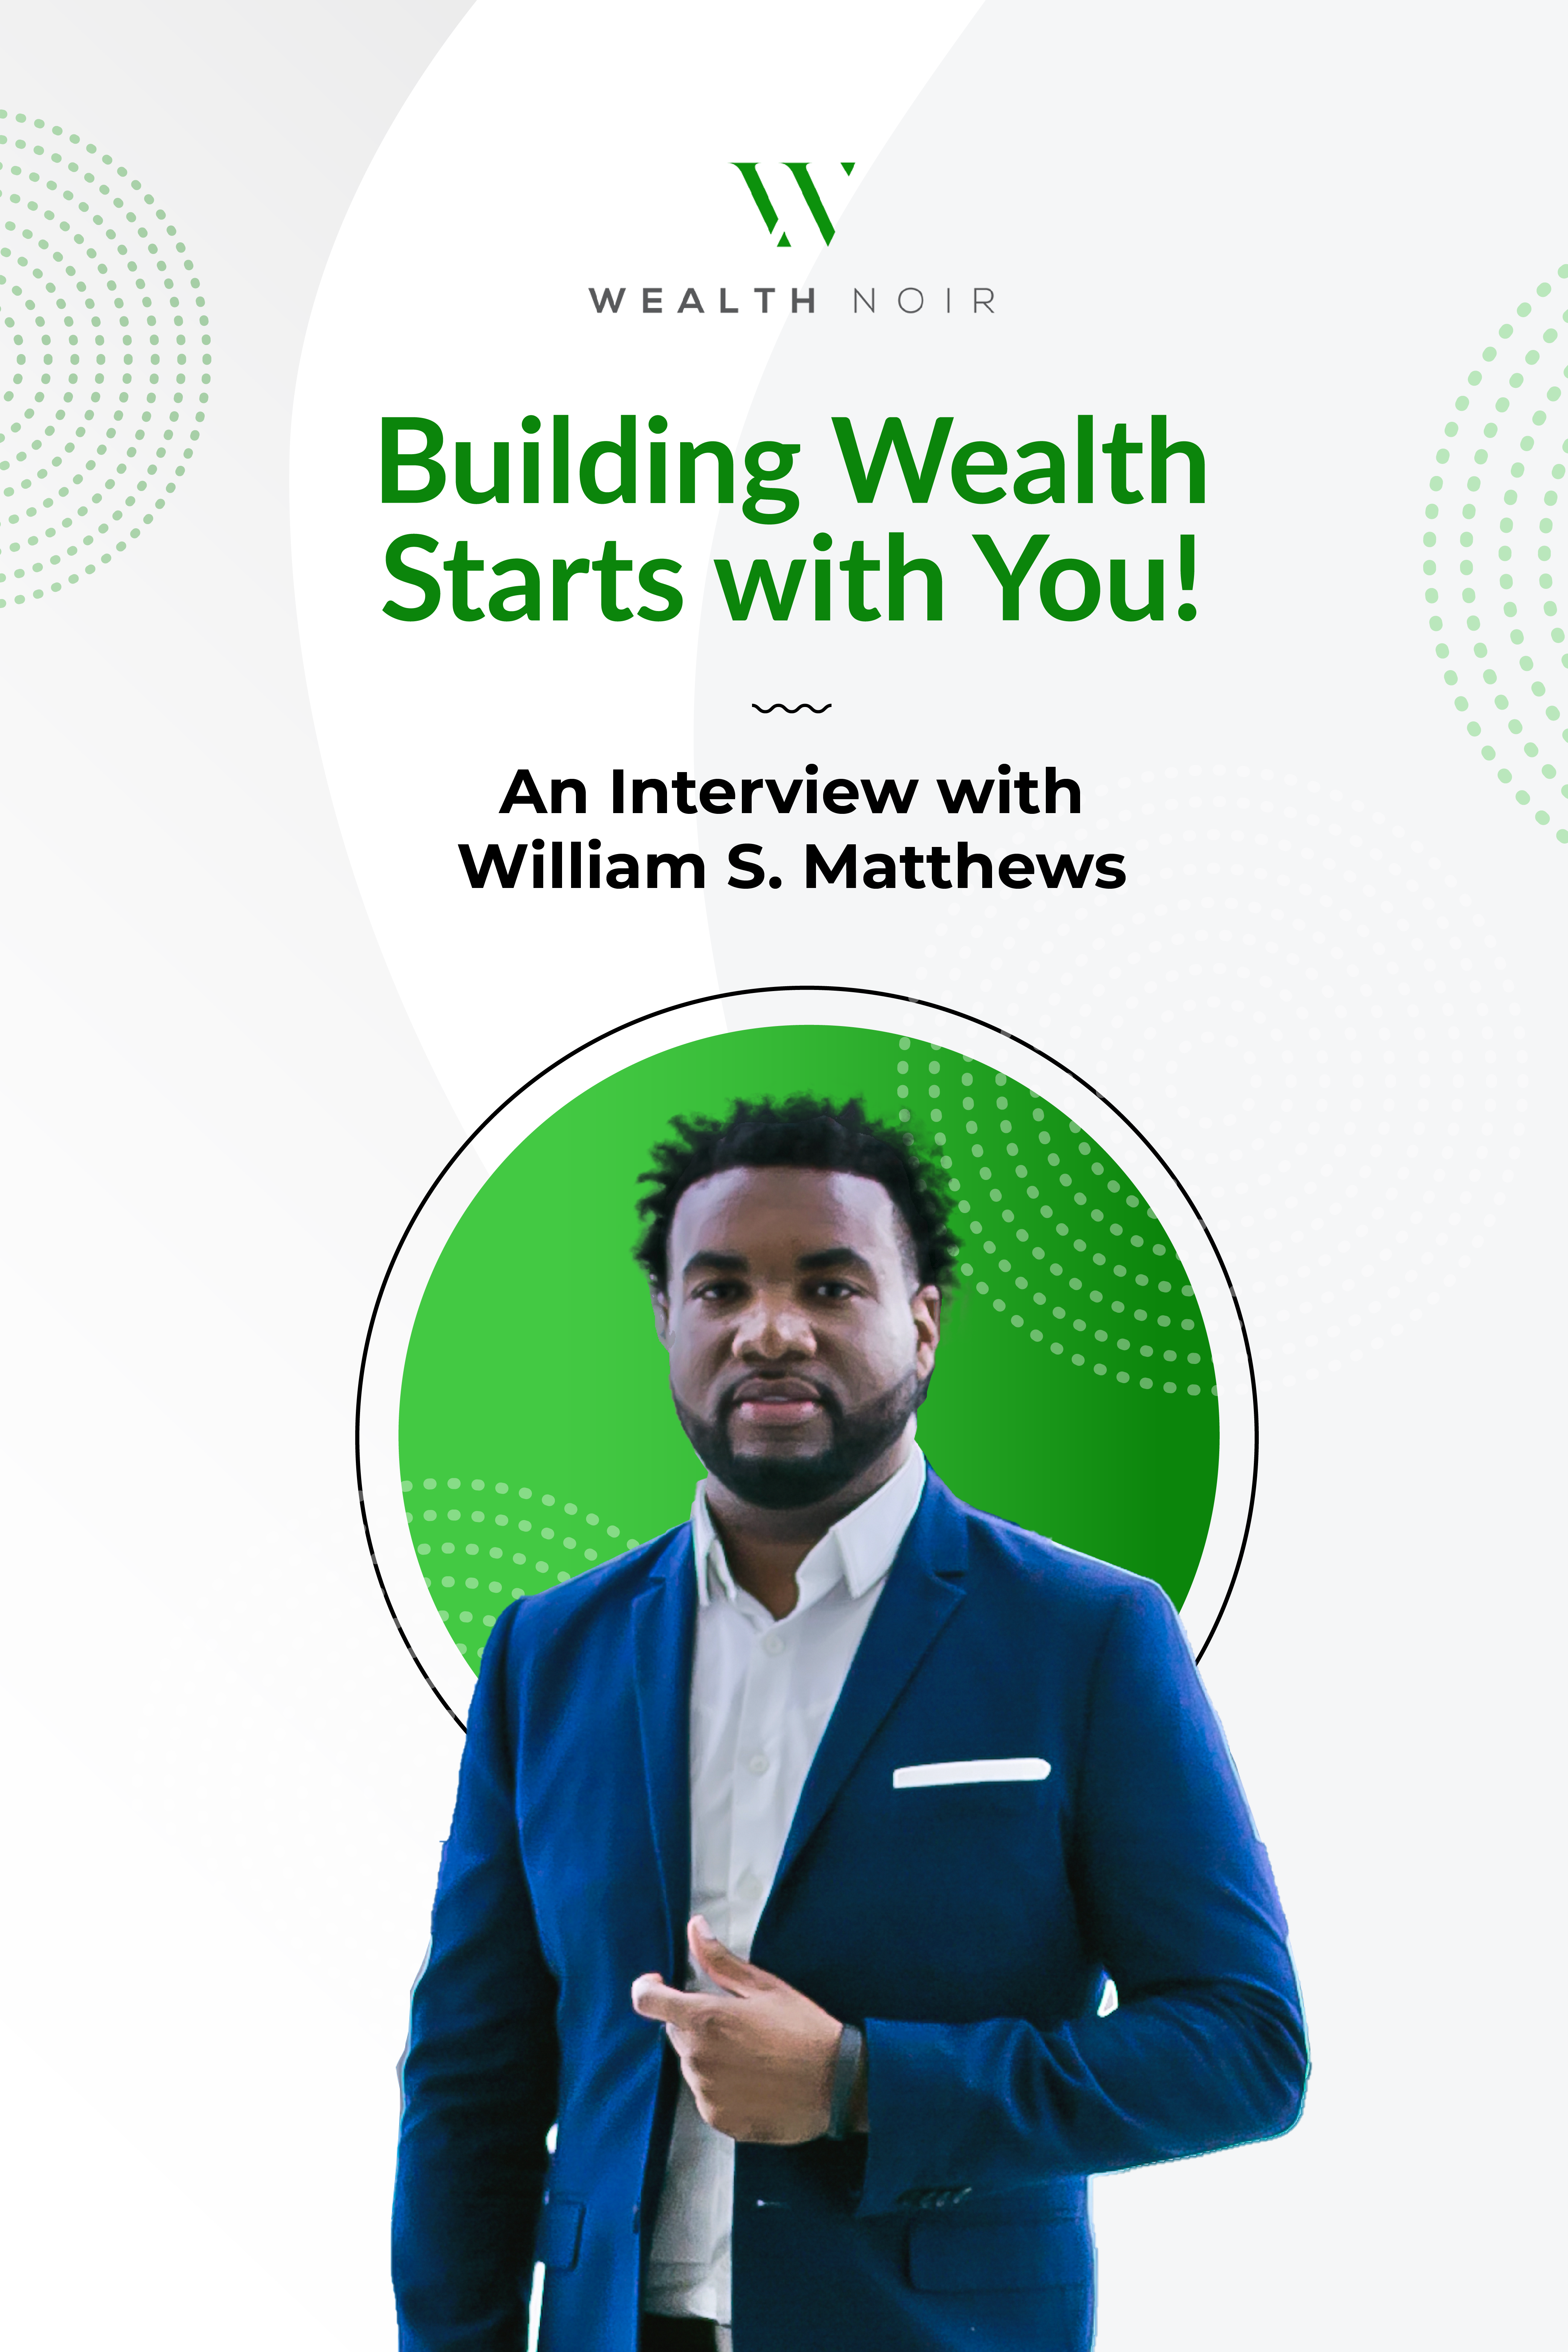 Building Wealth Starts with You! An Interview with William S. Matthews